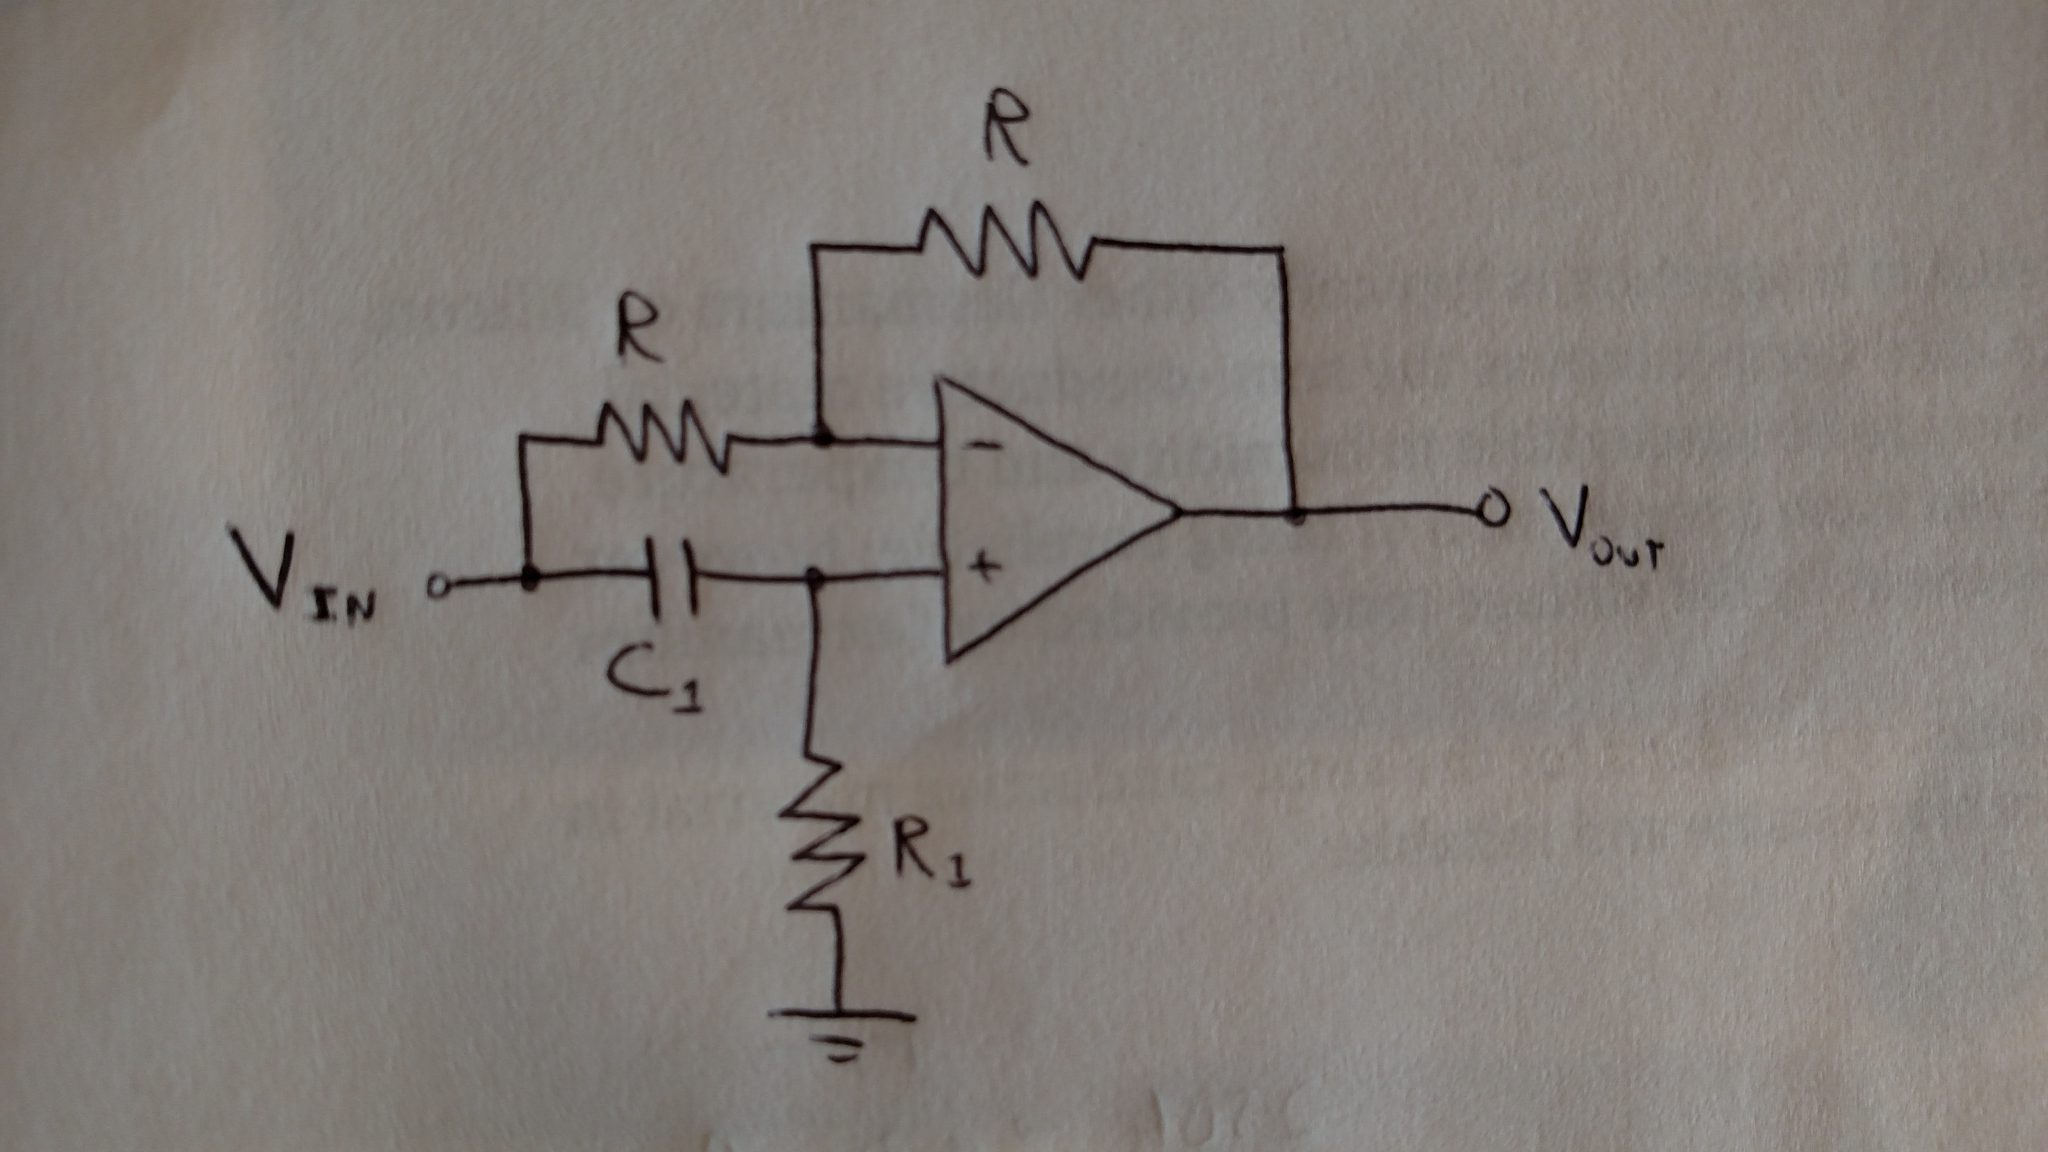 How To Build An Active Low Pass Filter Circuit With An Op Amp